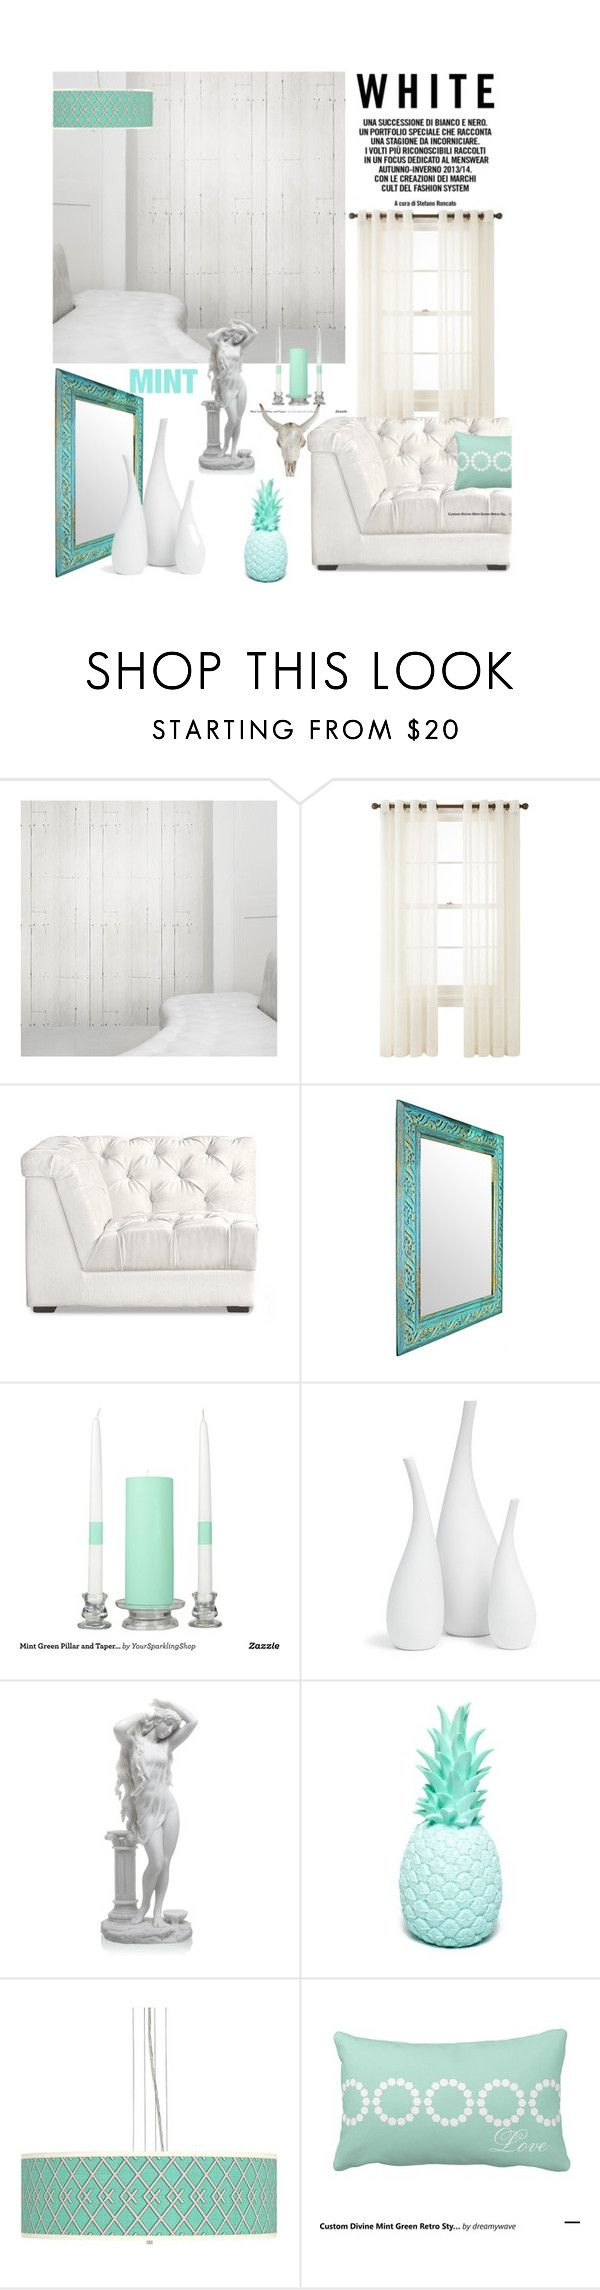 """""""White with a Minty Hint"""" by jesking ❤ liked on Polyvore featuring interior, interiors, interior design, home, home decor, interior decorating, Mineheart, Royal Velvet, Mitchell Gold + Bob Williams and Giclee Gallery"""